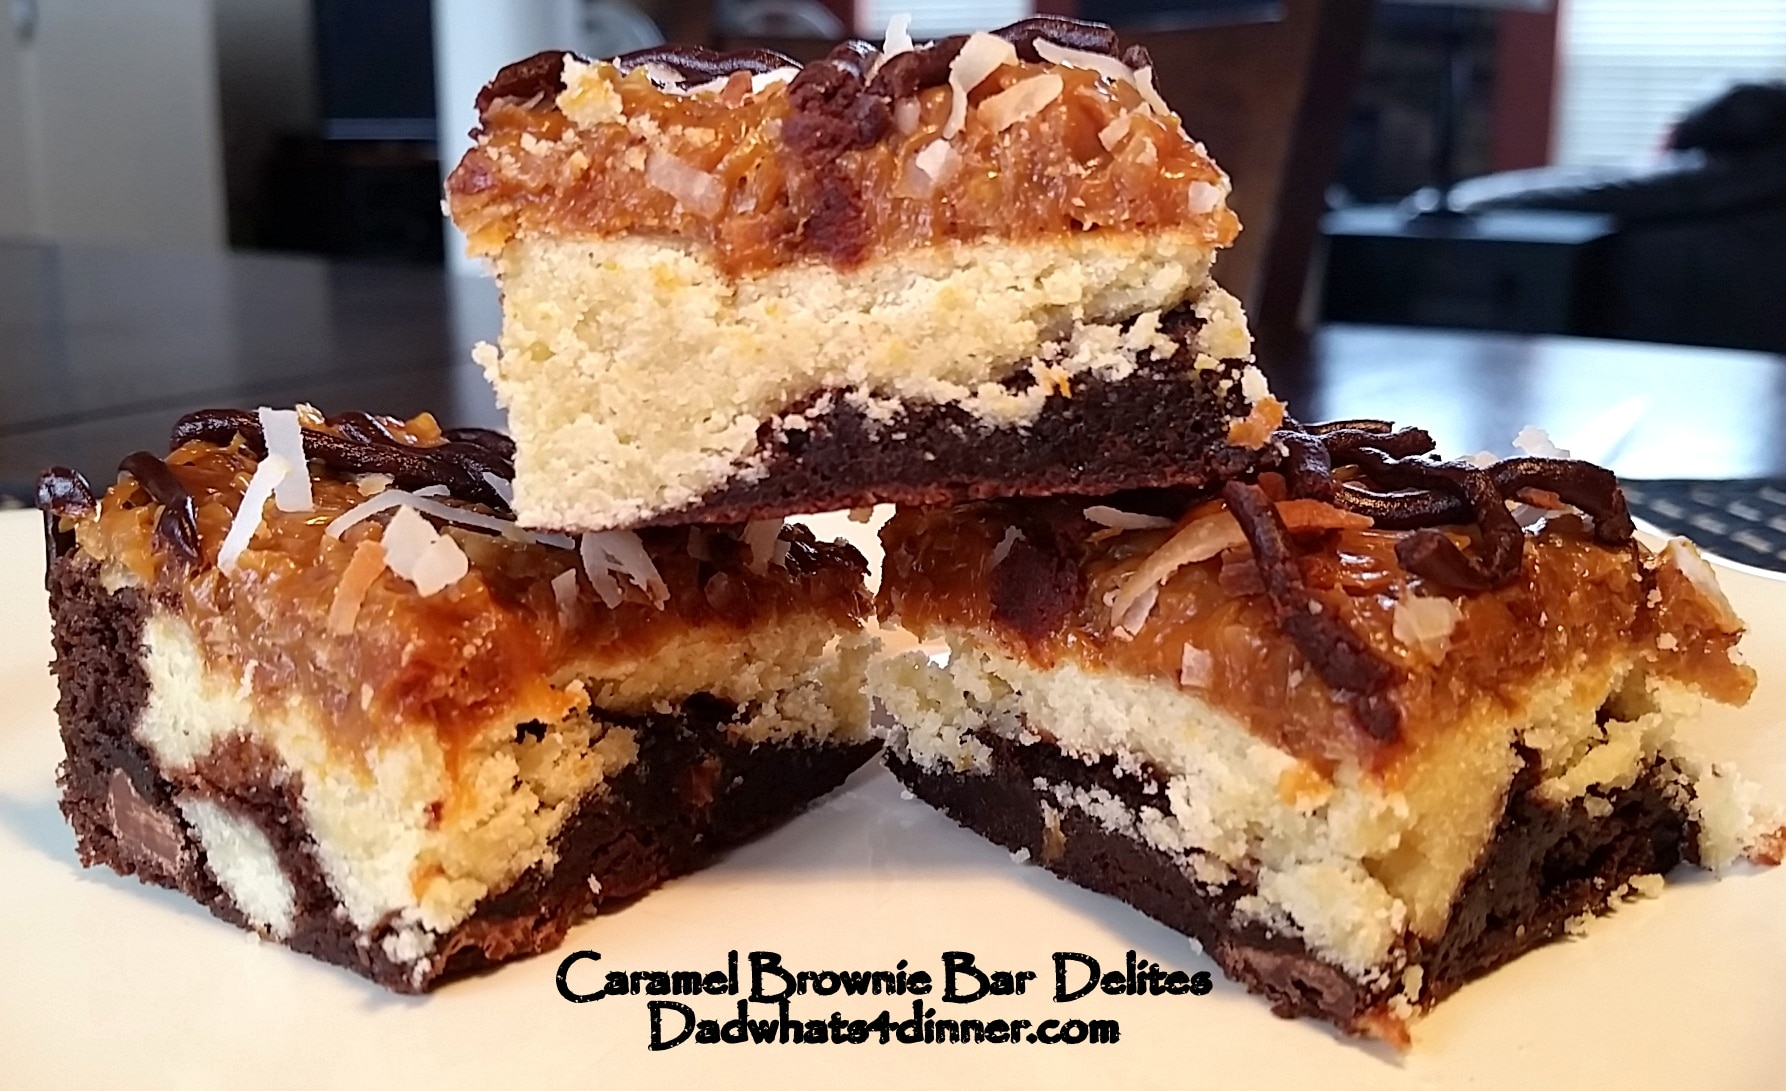 Caramel Brownie Bar DeLites | www.dadwhats4dinner.com ©